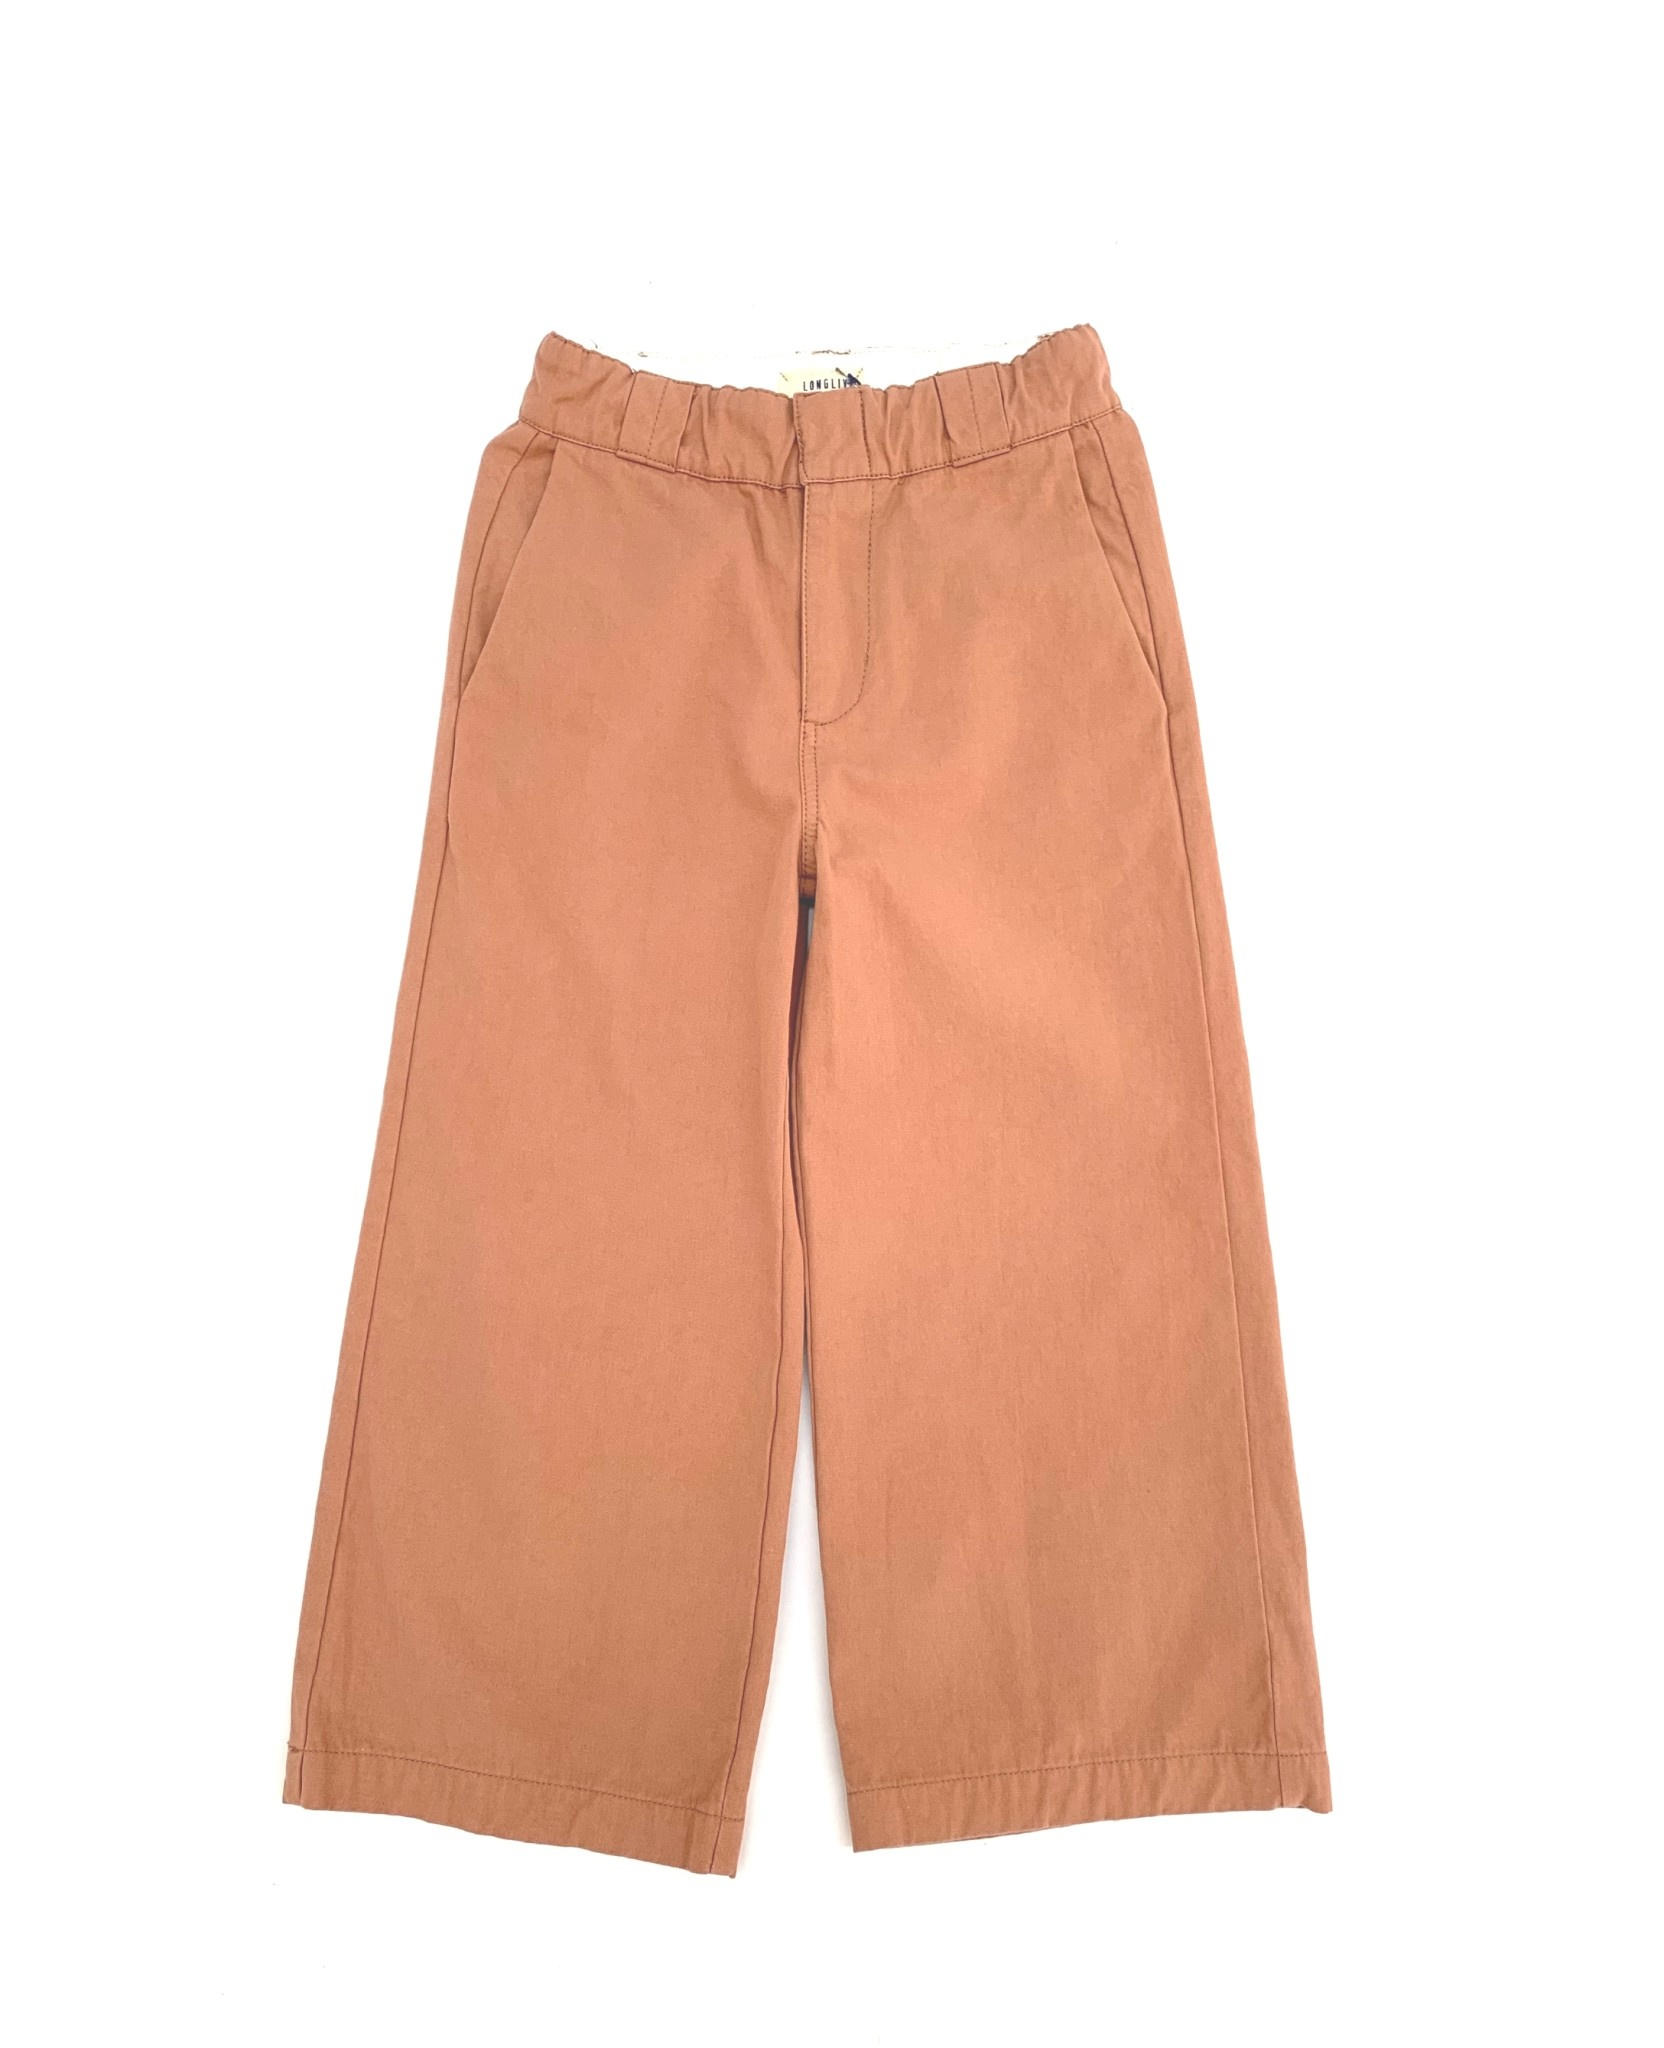 Canvas baby pants red dust-1